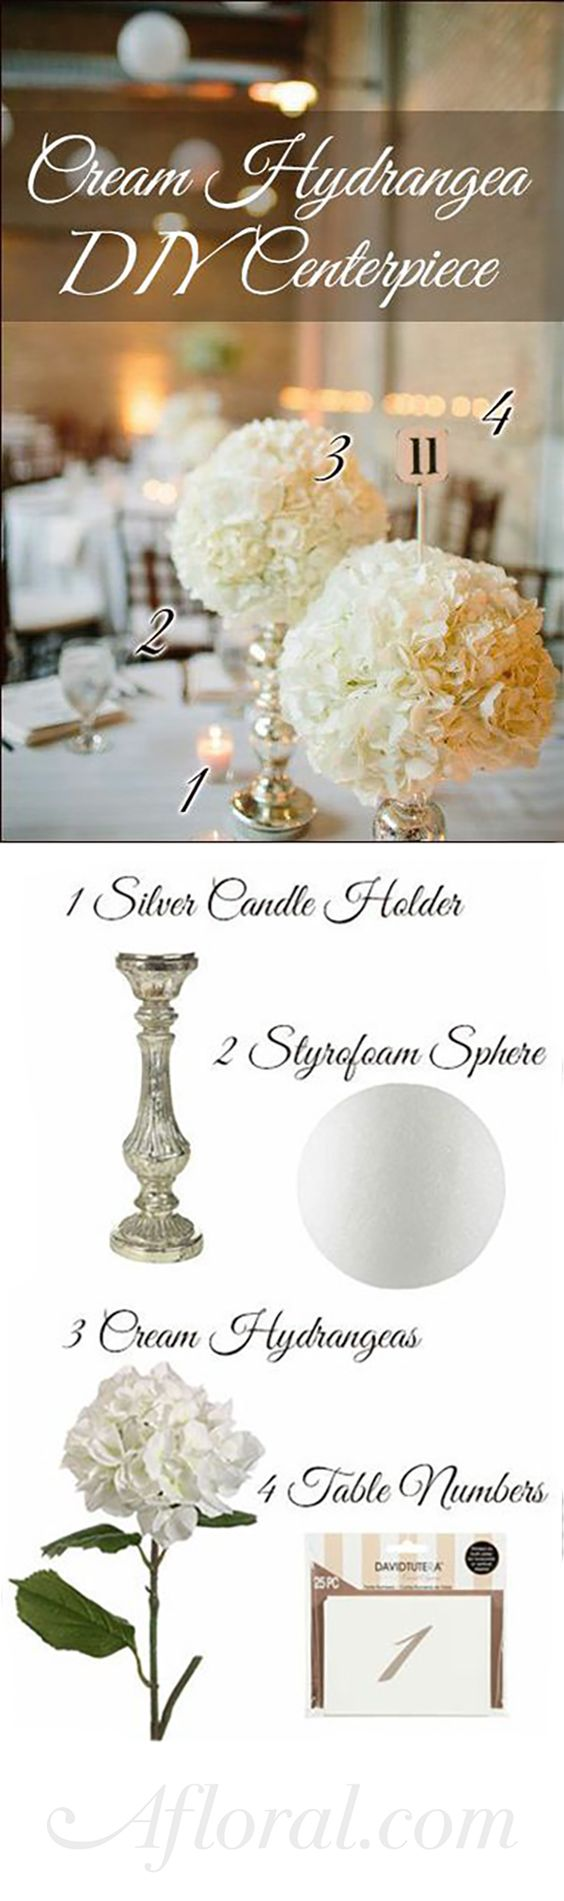 Affordable wedding centerpieces original ideas tips diys diy hydrangea centerpiece ideas for your wedding reception solutioingenieria Choice Image